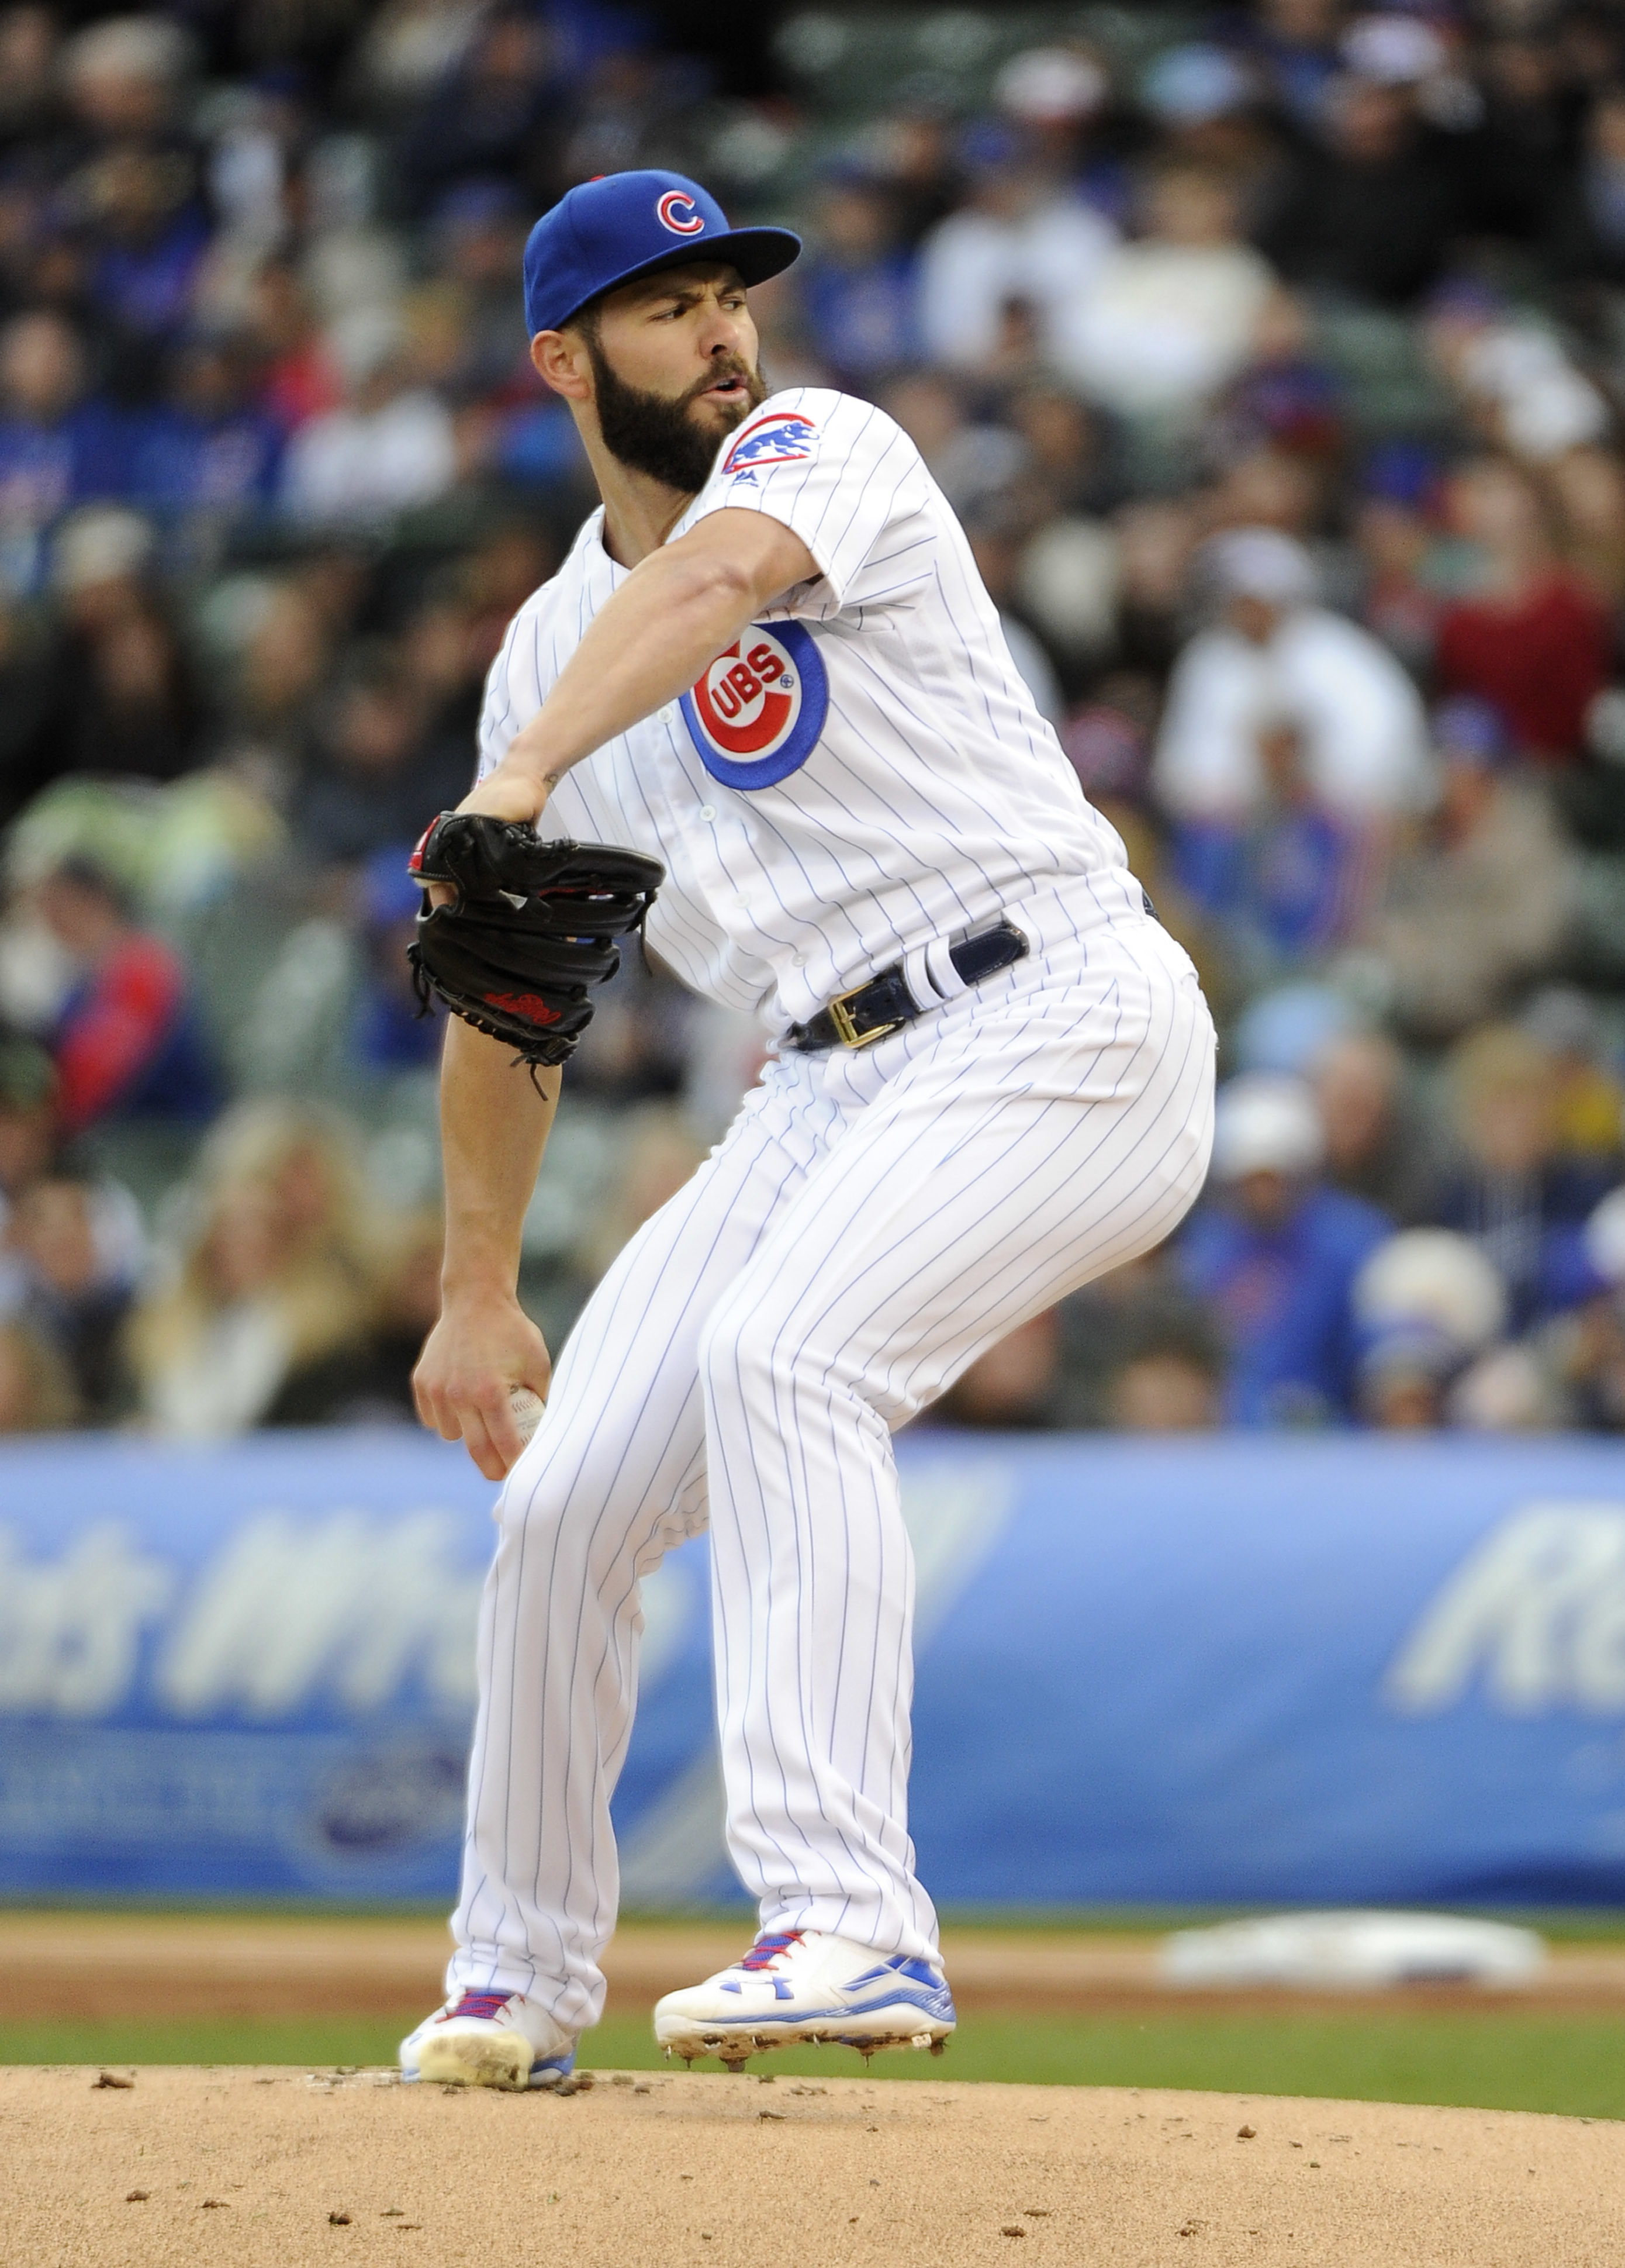 Chicago Cubs starting pitcher Jake Arrieta (49) throws against the Pittsburgh Pirates during the first inning of a baseball game, Saturday, May 14, 2016, in Chicago. (AP Photo/David Banks)